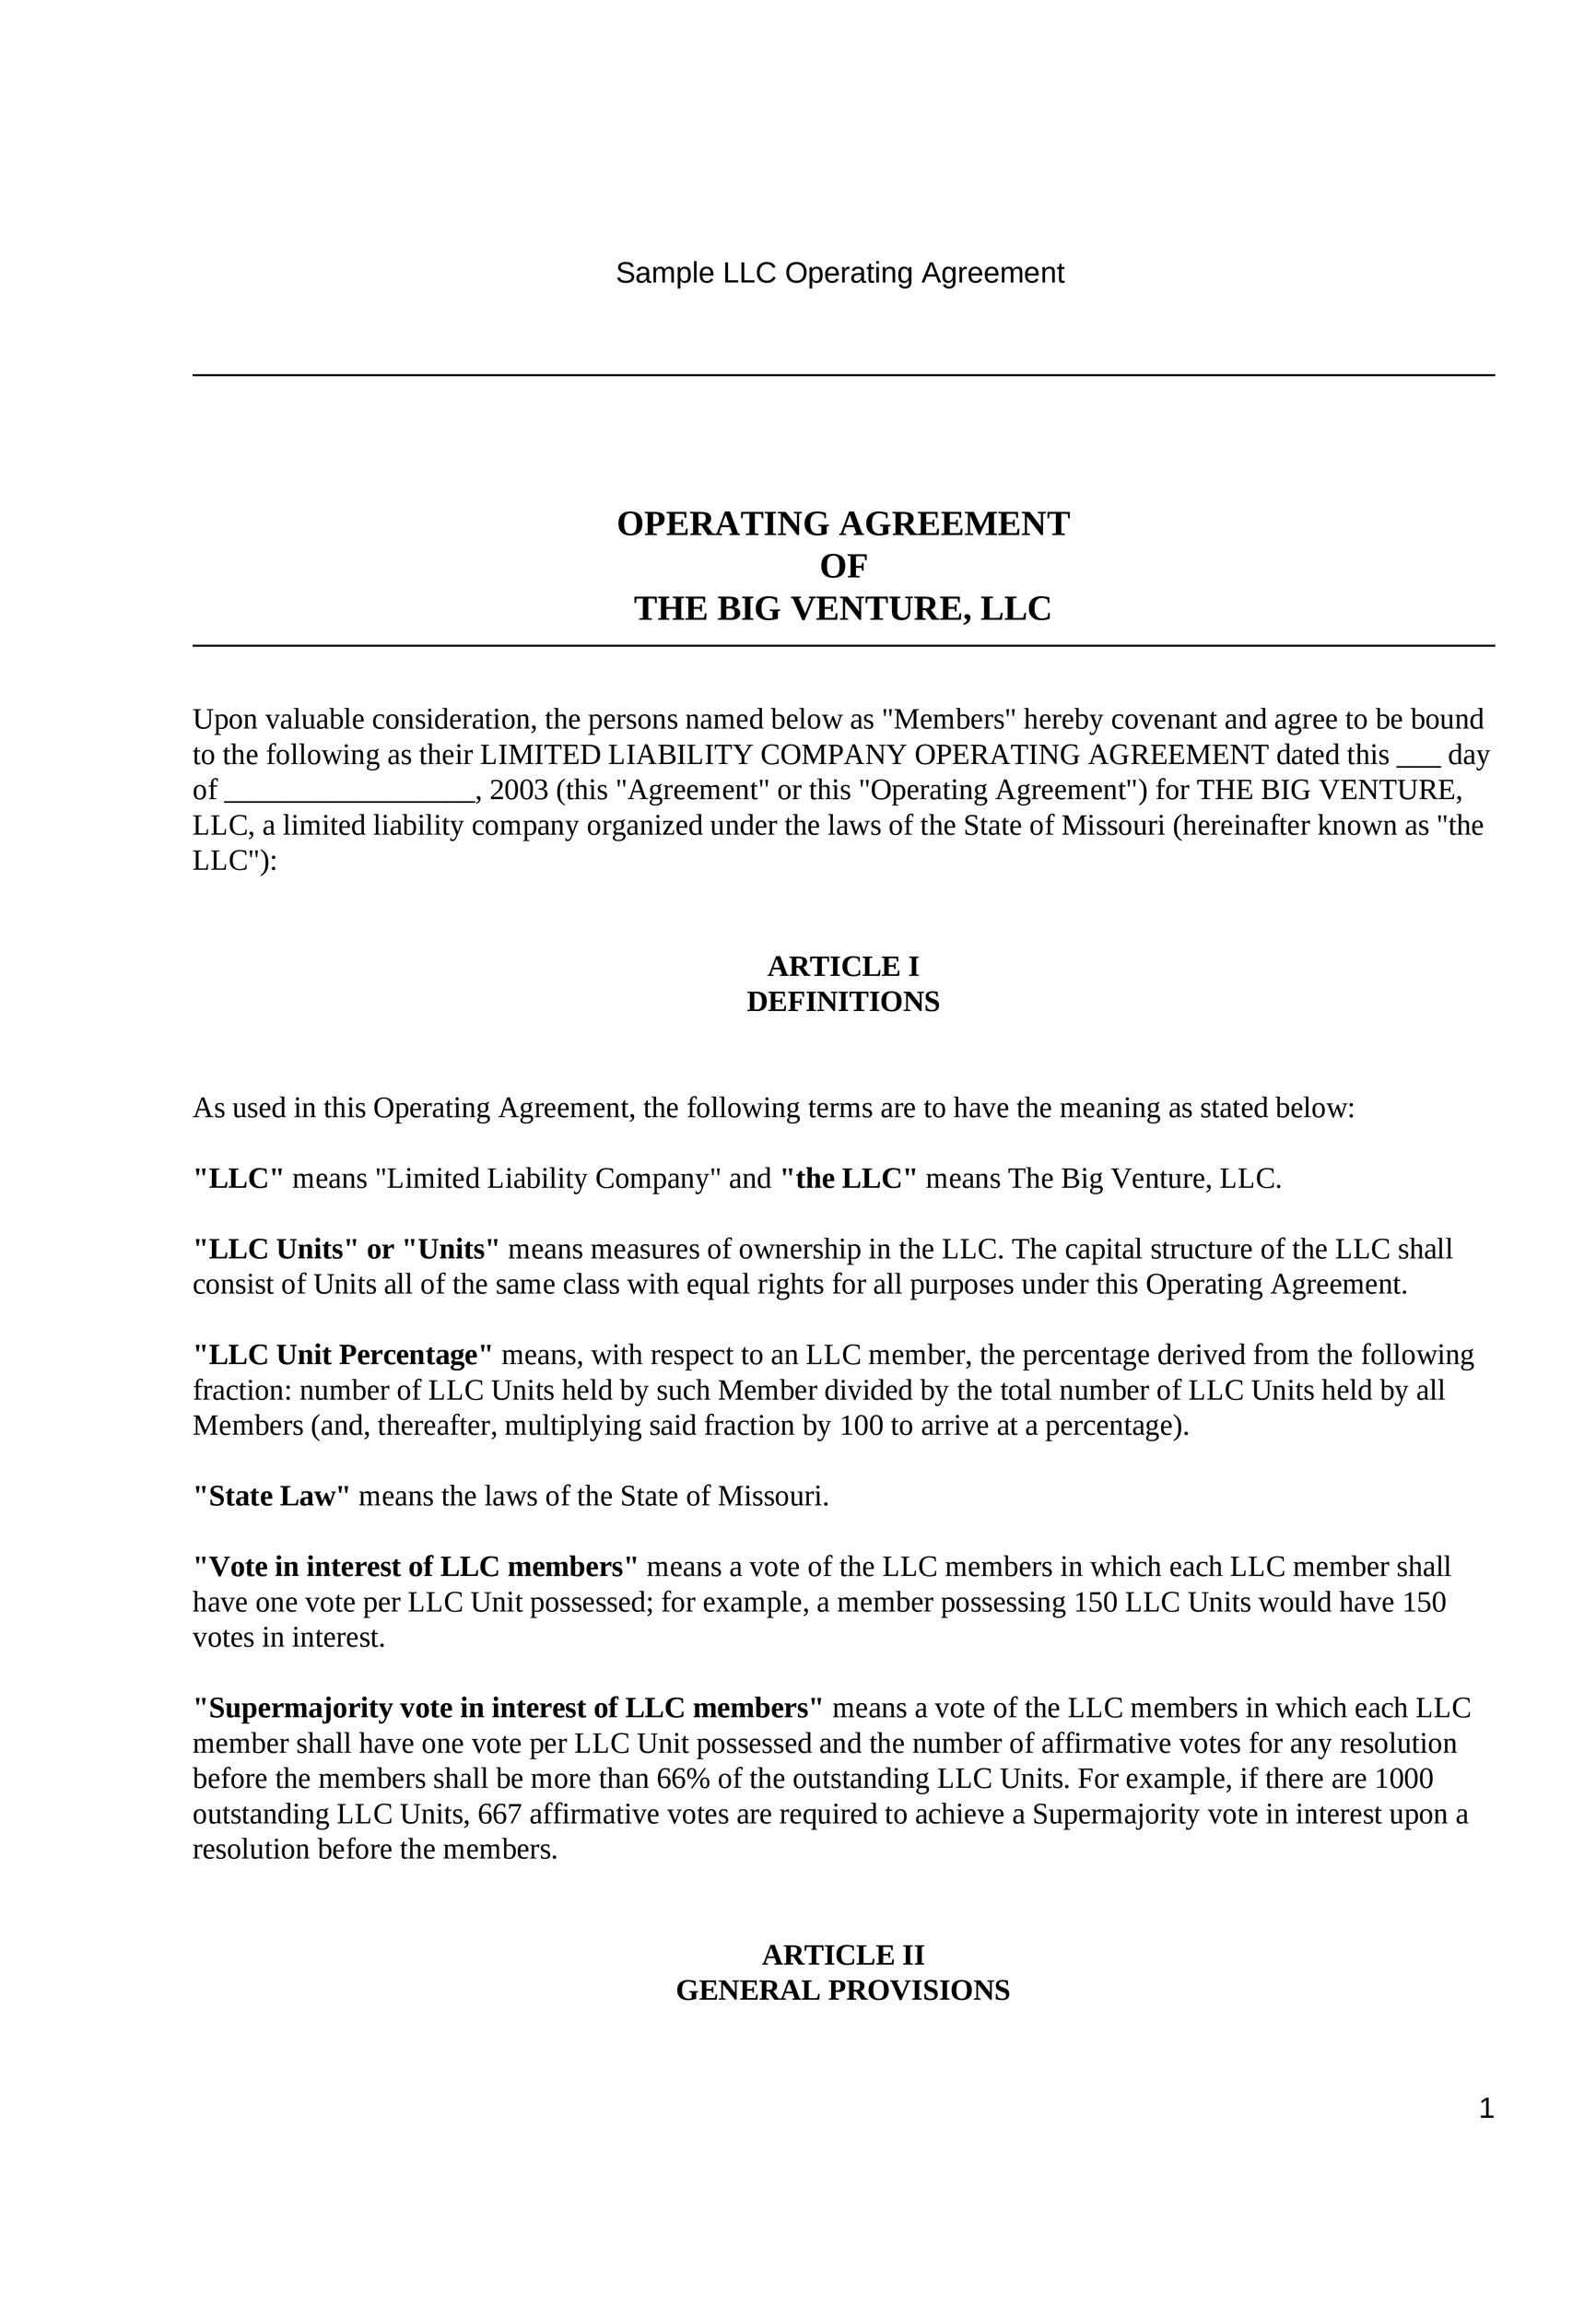 30 Professional Llc Operating Agreement Templates - Template Lab